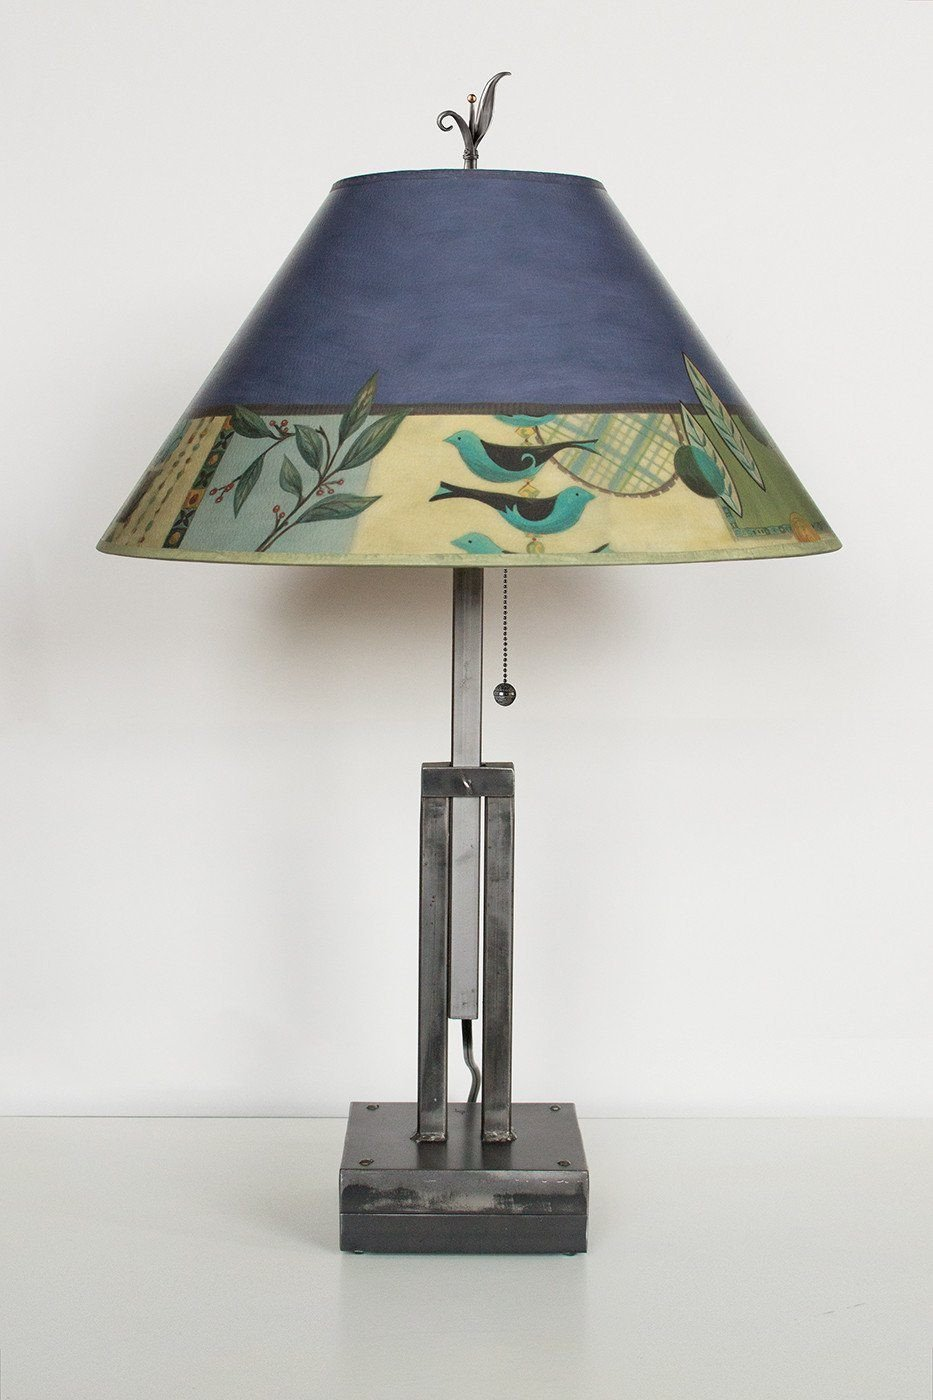 Adjustable-Height Steel Table Lamp with Large Conical Shade in New Capri Periwinkle